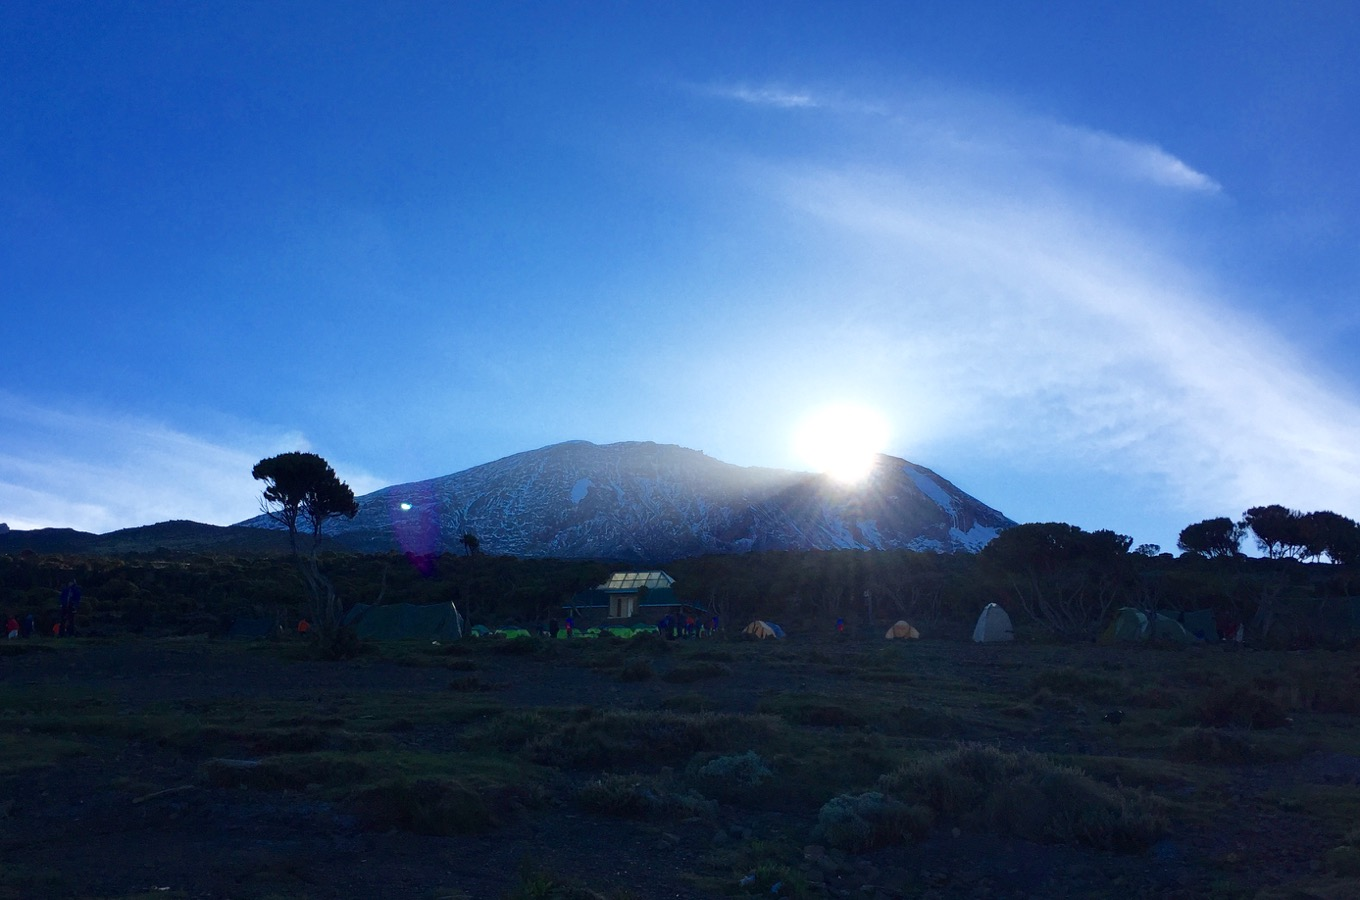 Sunrise at Kilimanjaro with view on Kibo